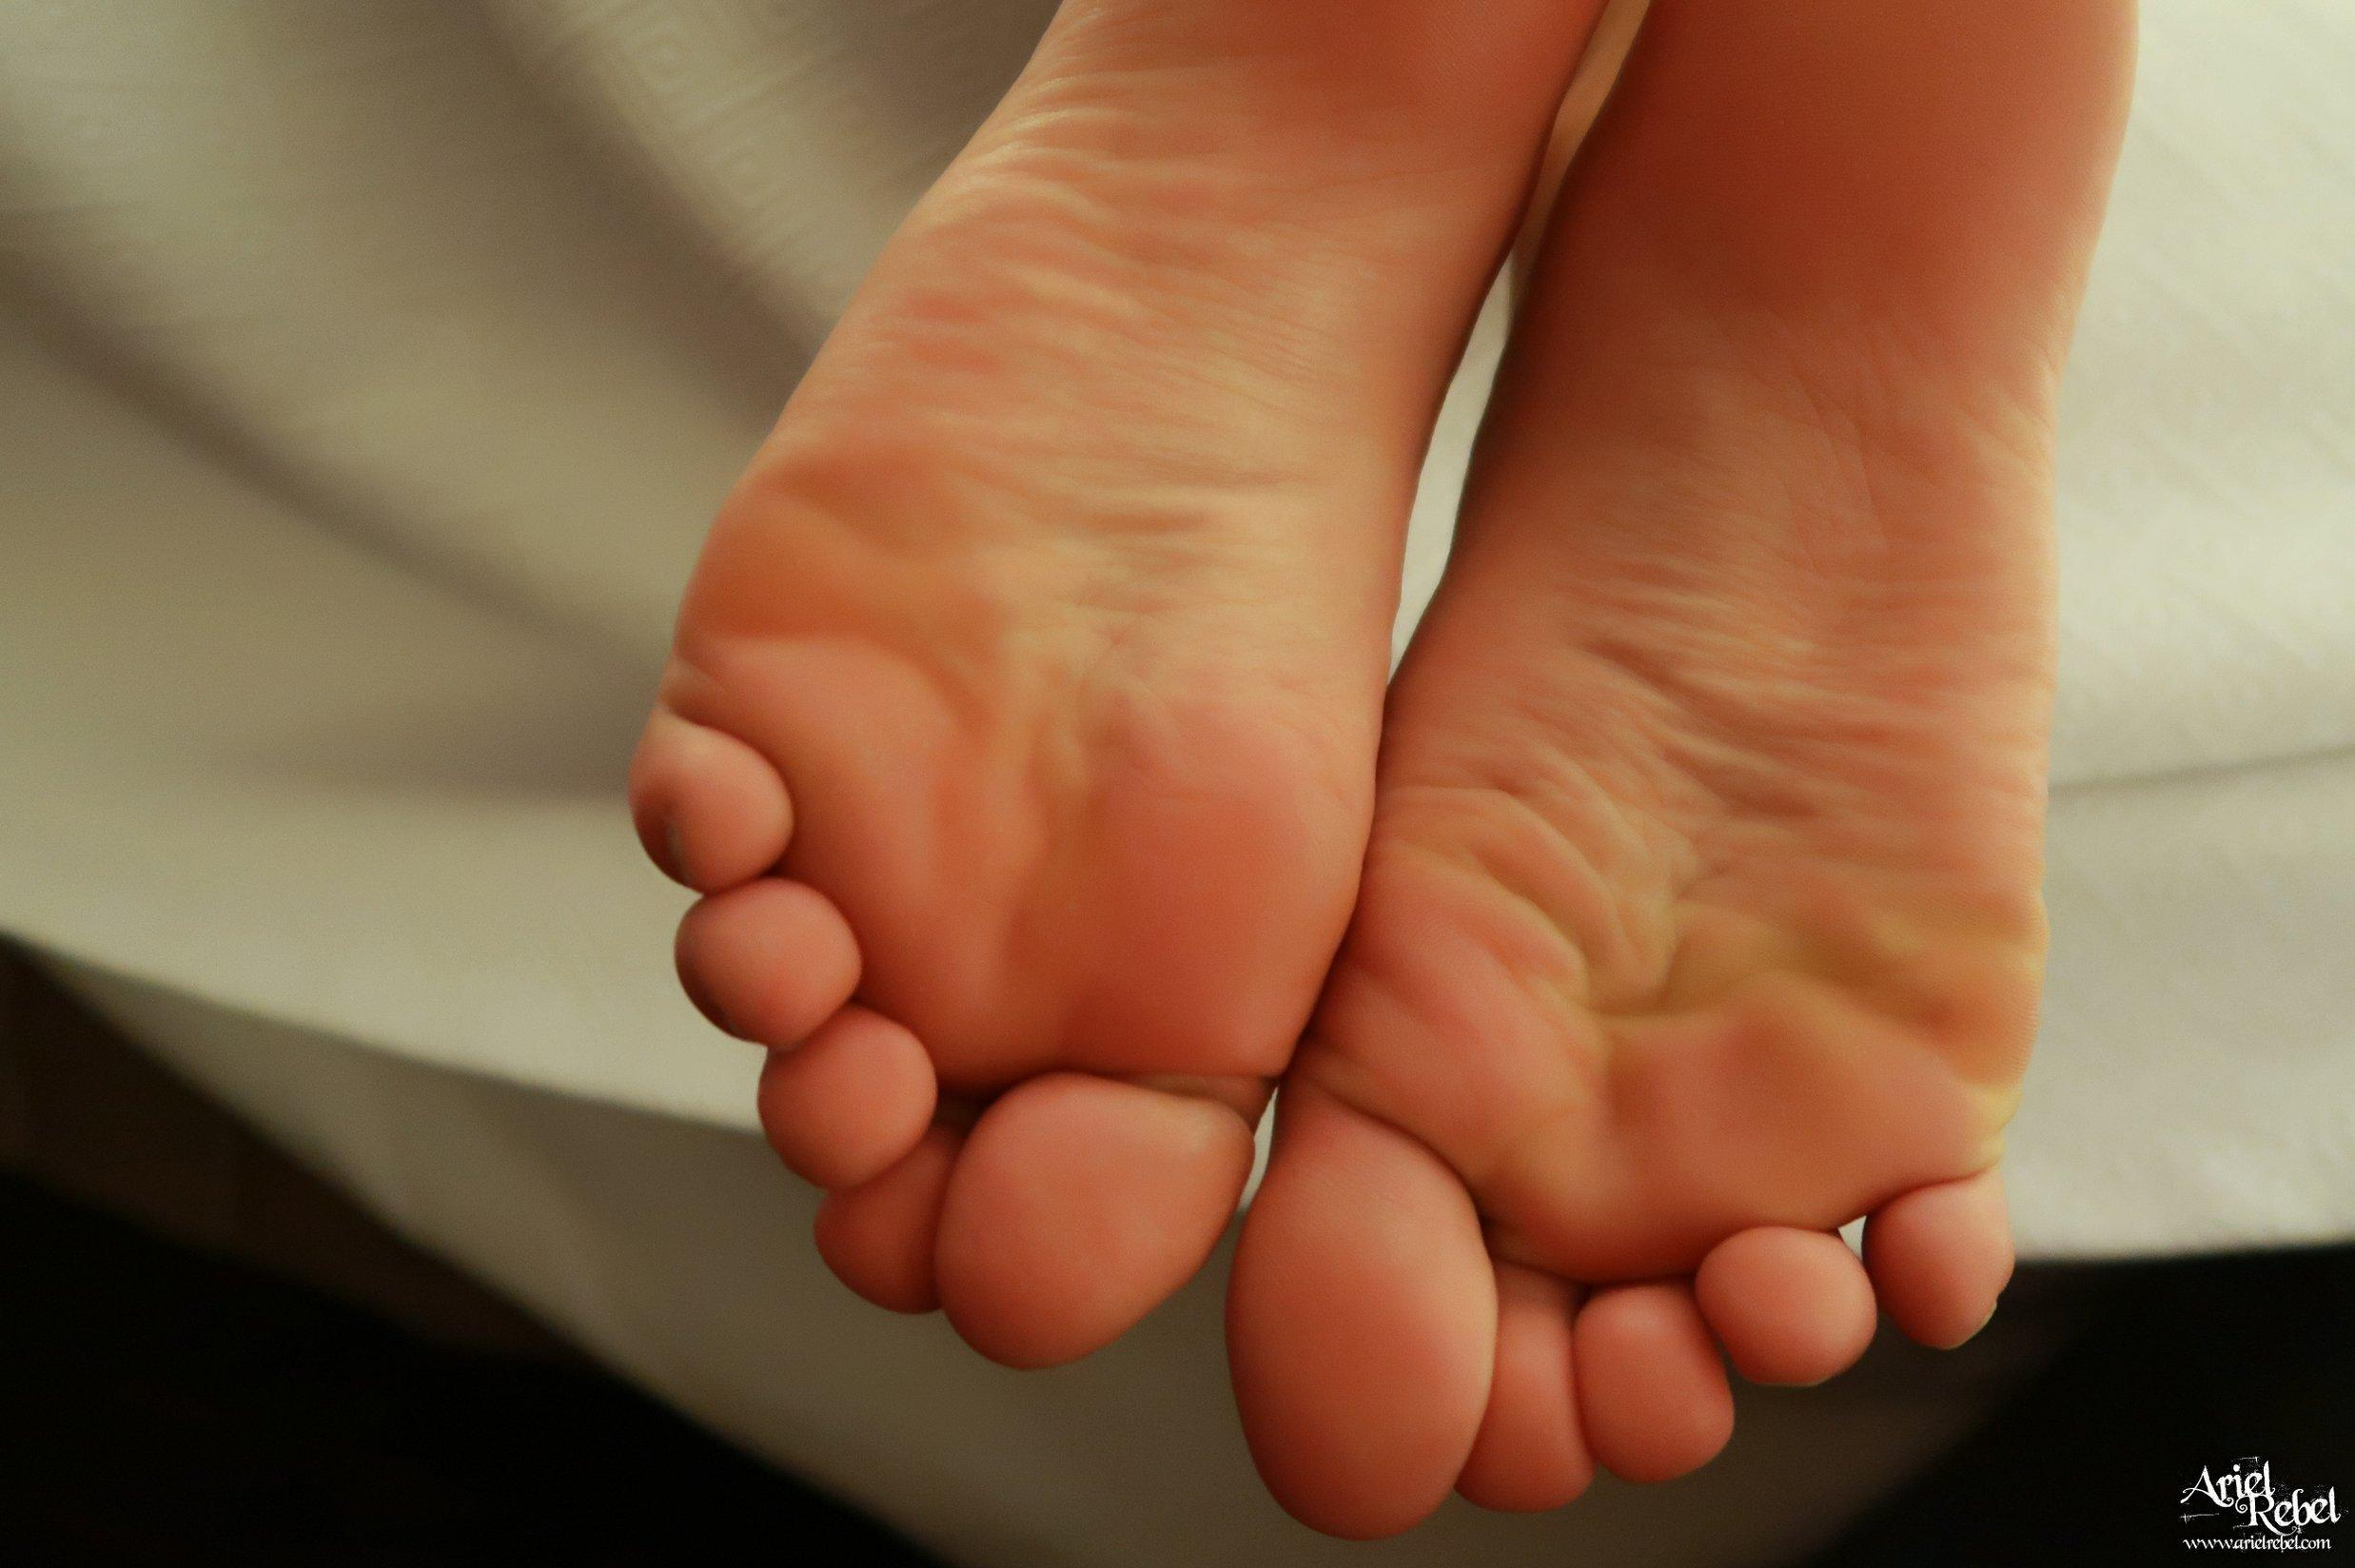 Ariel Rebel Hotel Footsies | Coed Cherry photo 5